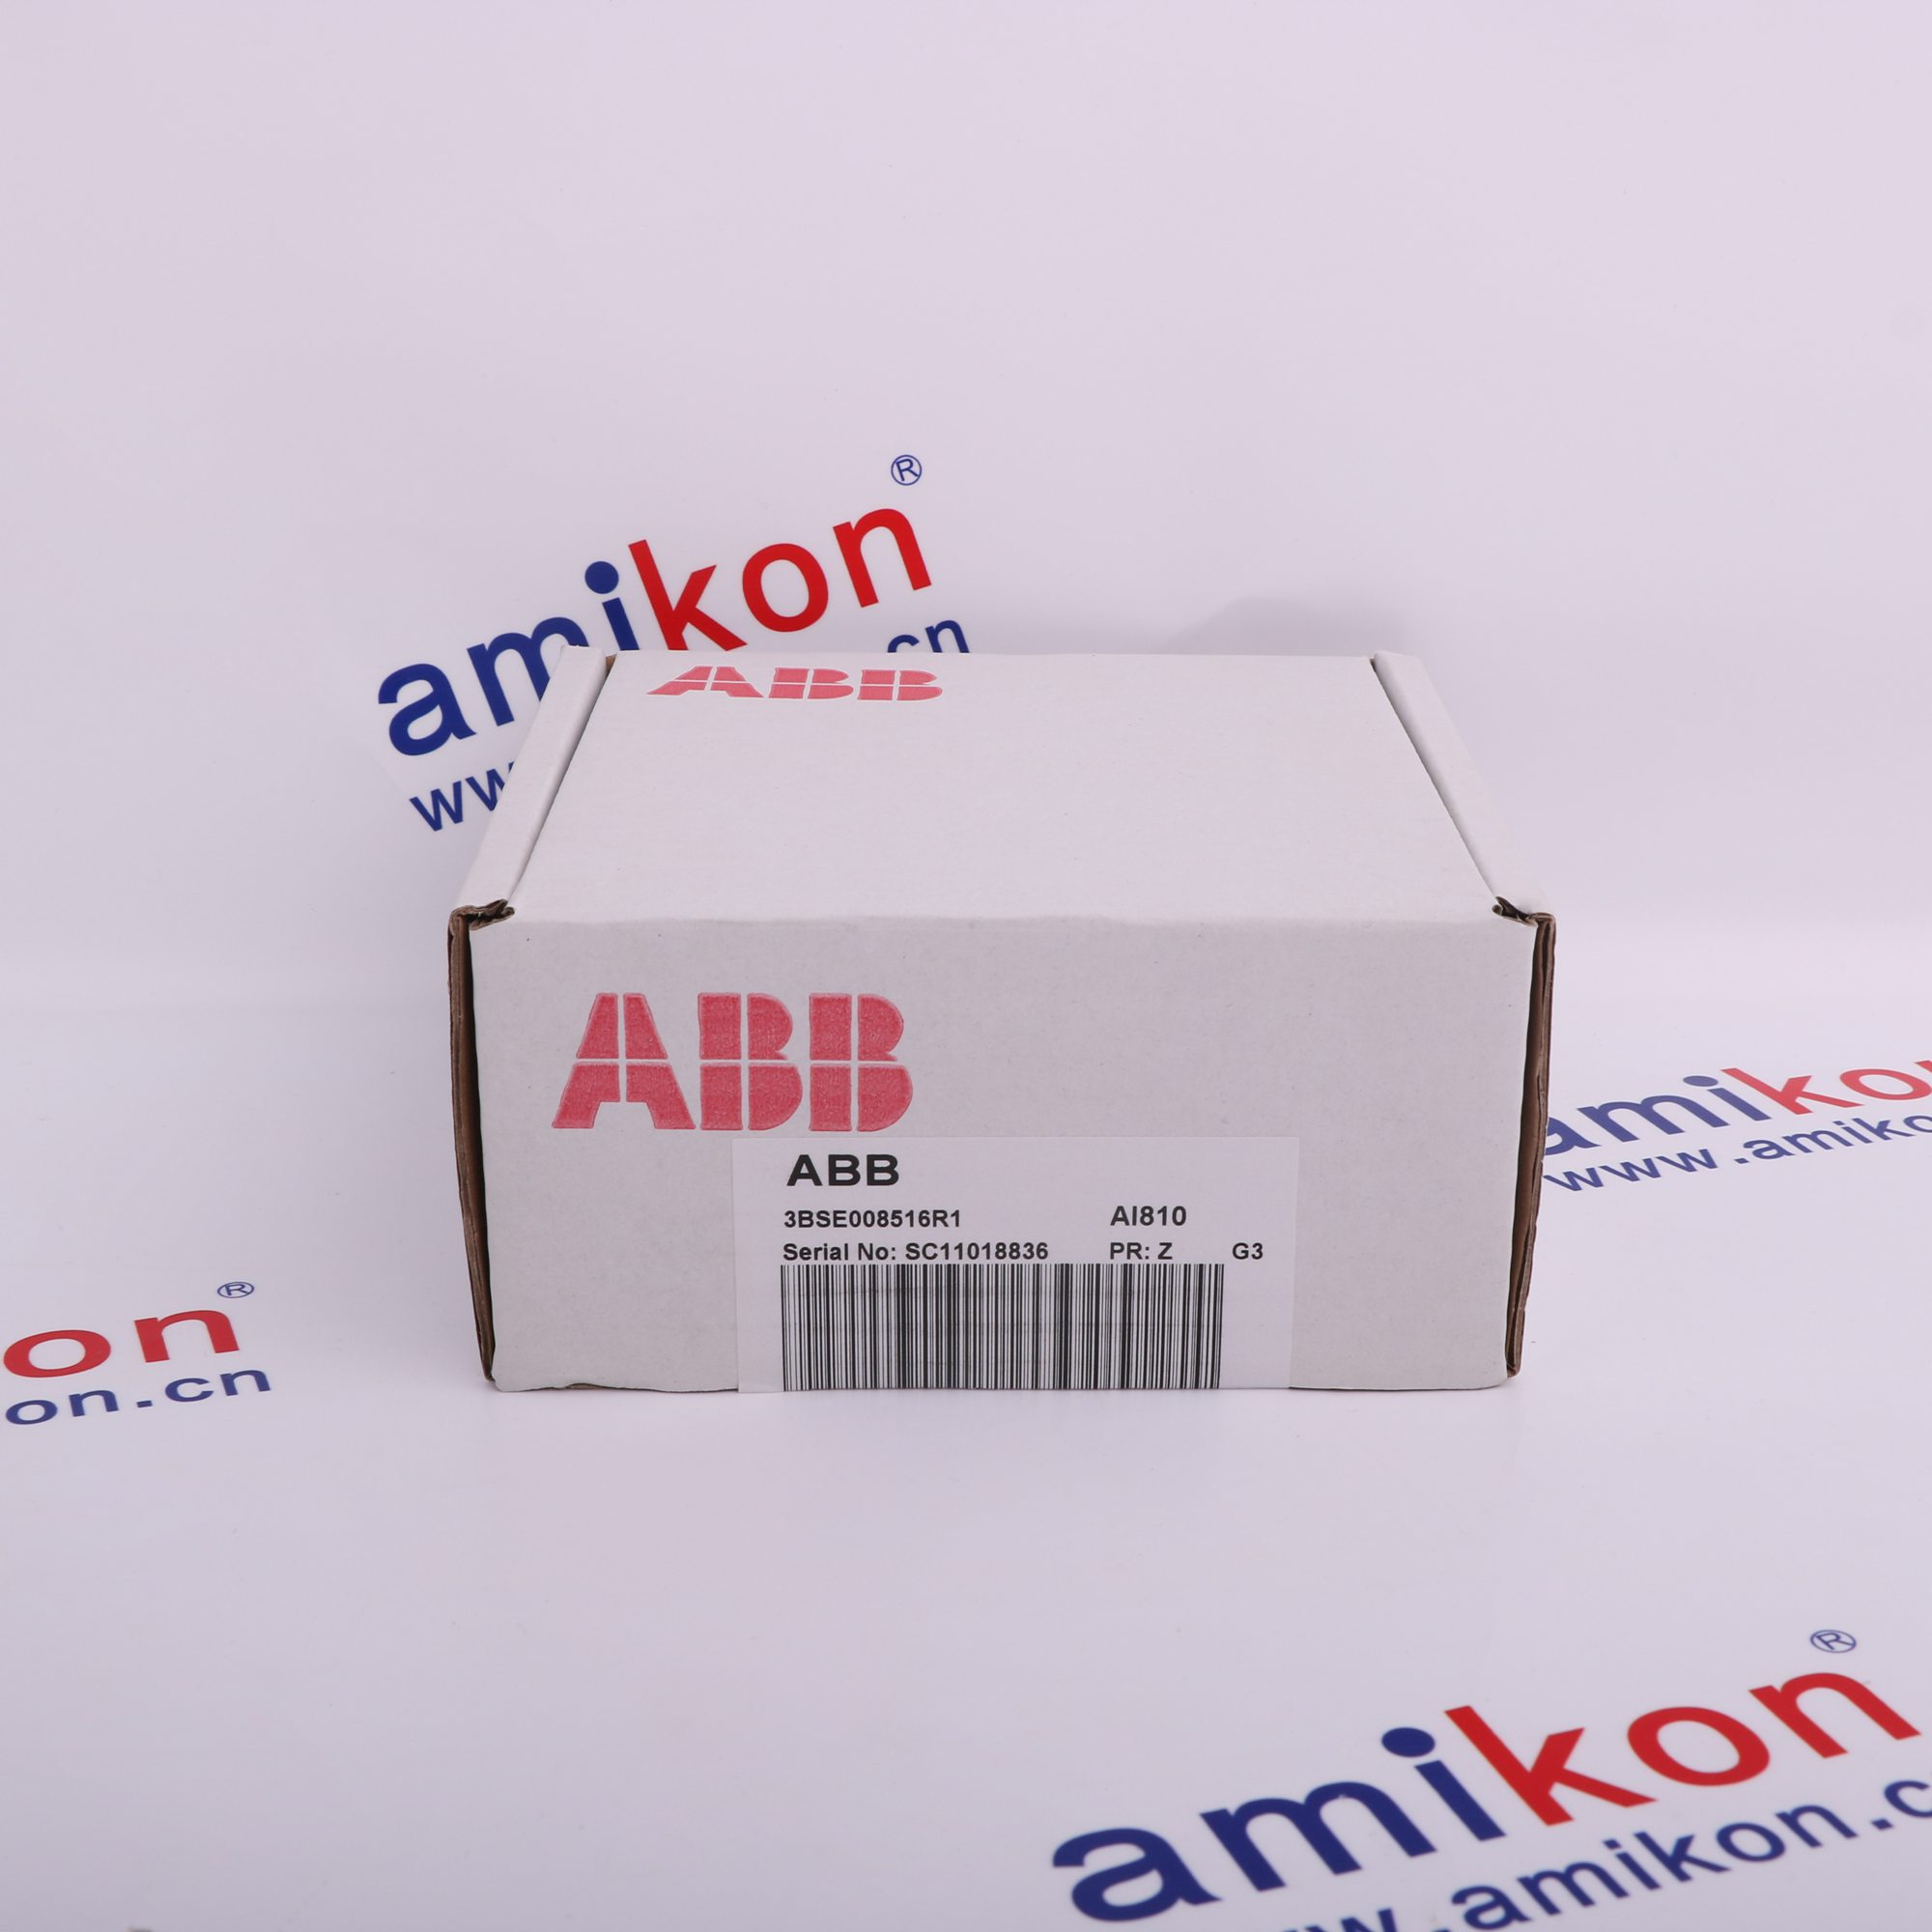 ABB 3BHB004484R0003 In Stock For Sale